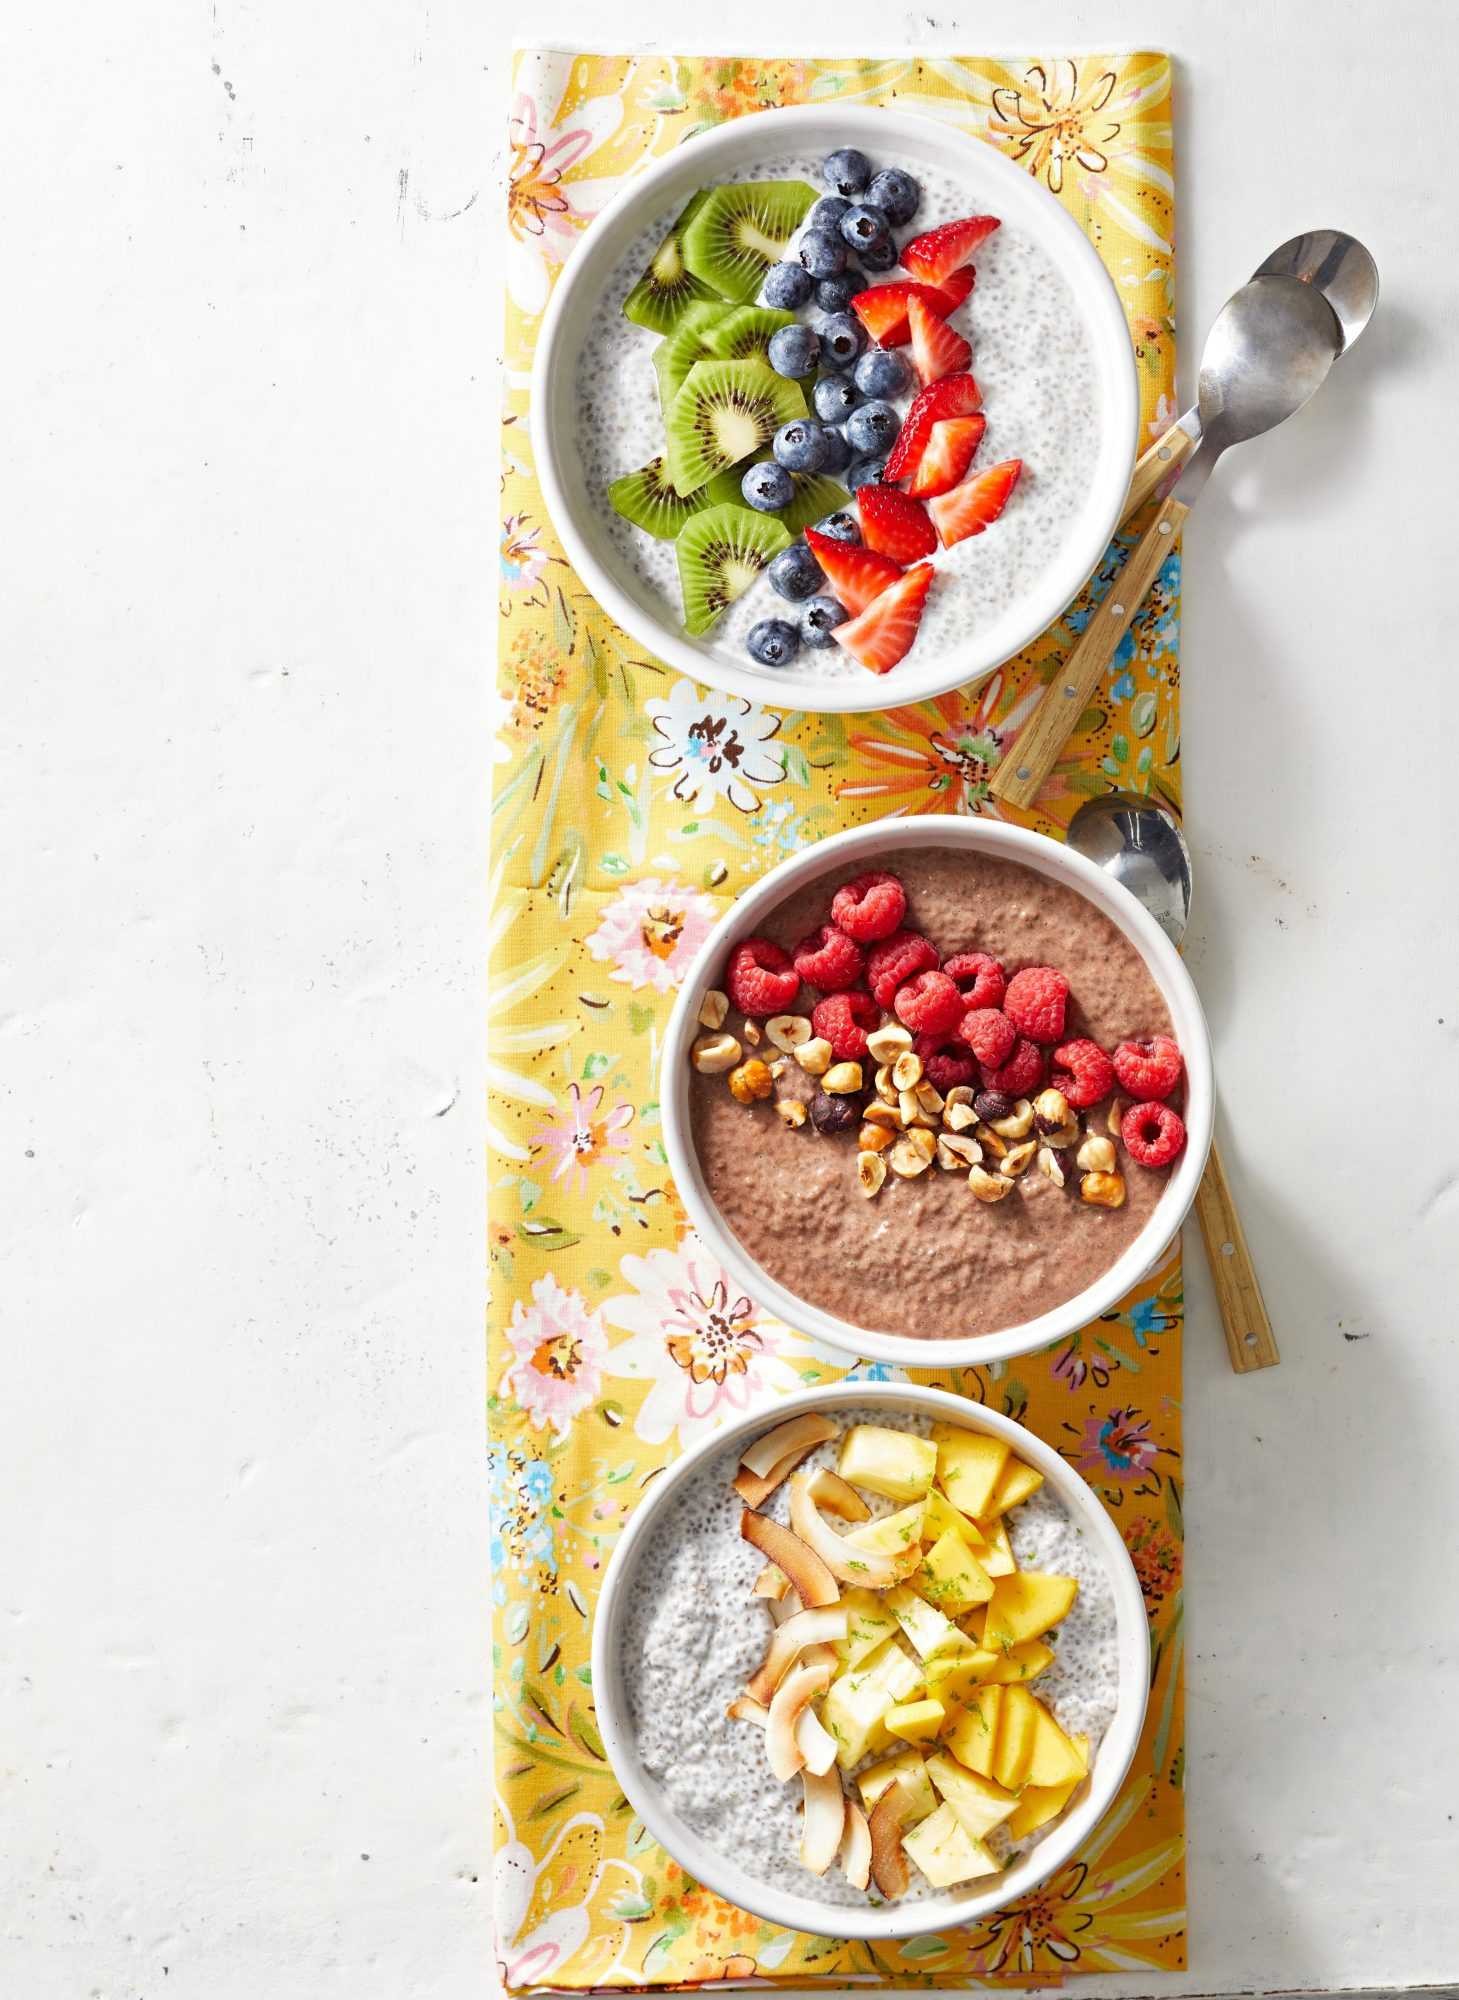 Basic Chia Pudding bowls with sliced fruit and nuts